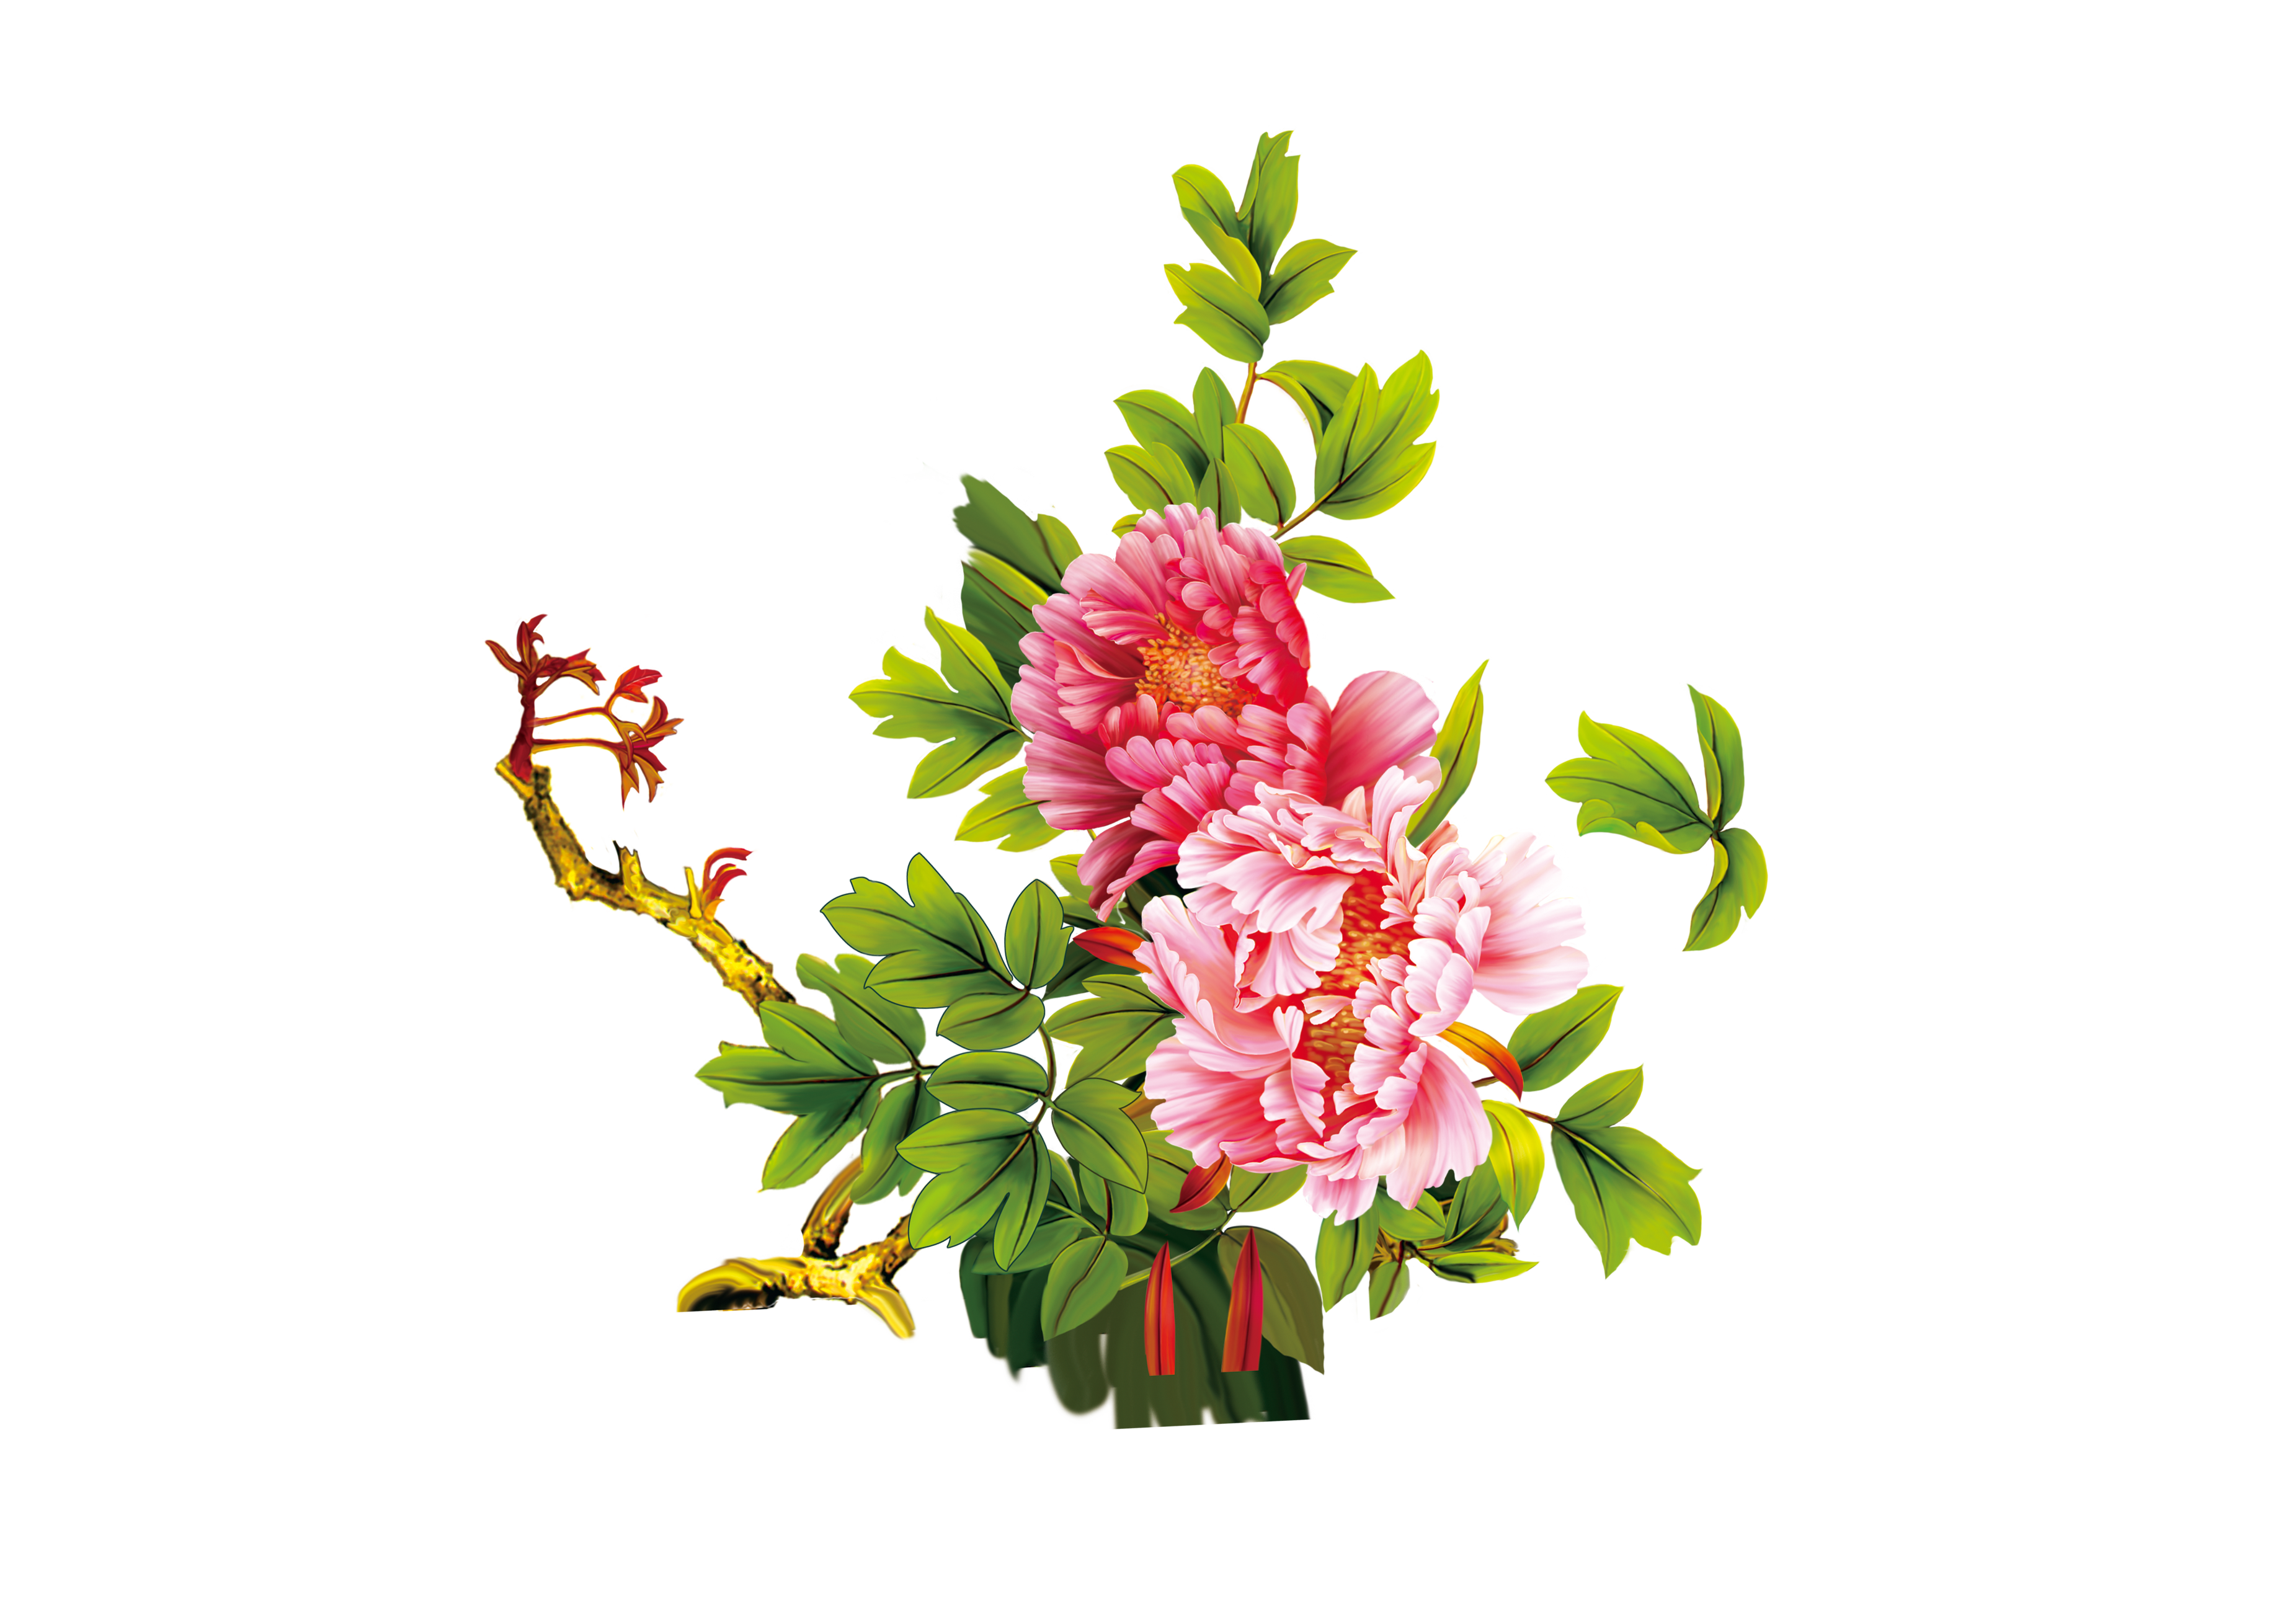 Free download images of flowers png stock Floral design Moutan peony Download Flower - Peony 3702*2601 ... png stock